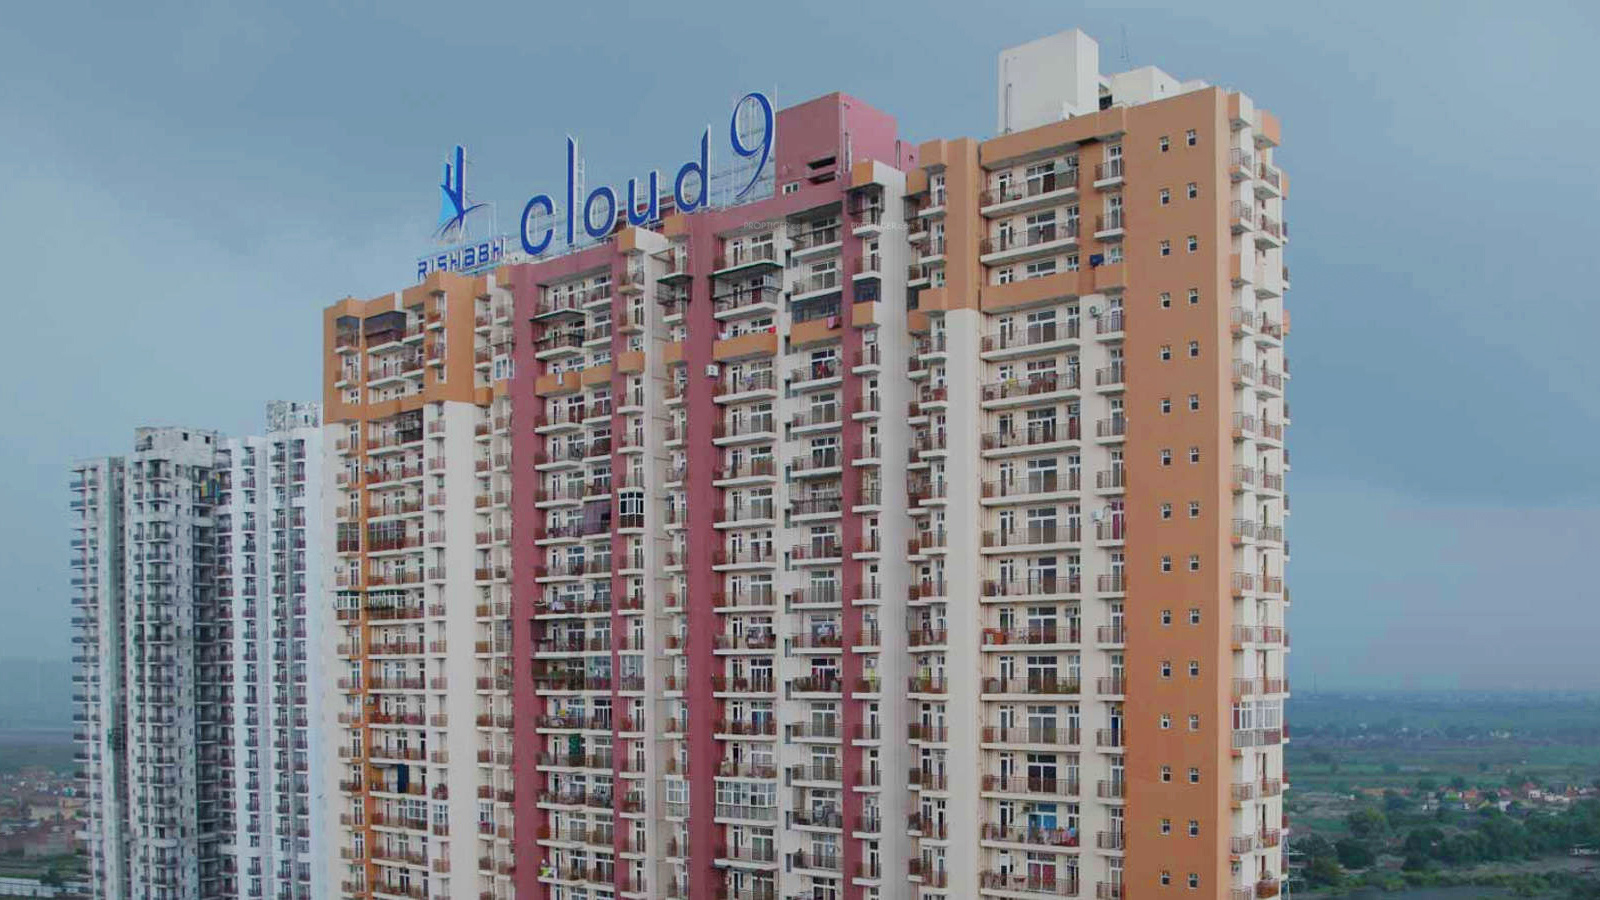 1137 sq ft 2 BHK 2T Apartment for Sale in Rishabh Buildcon Cloud9